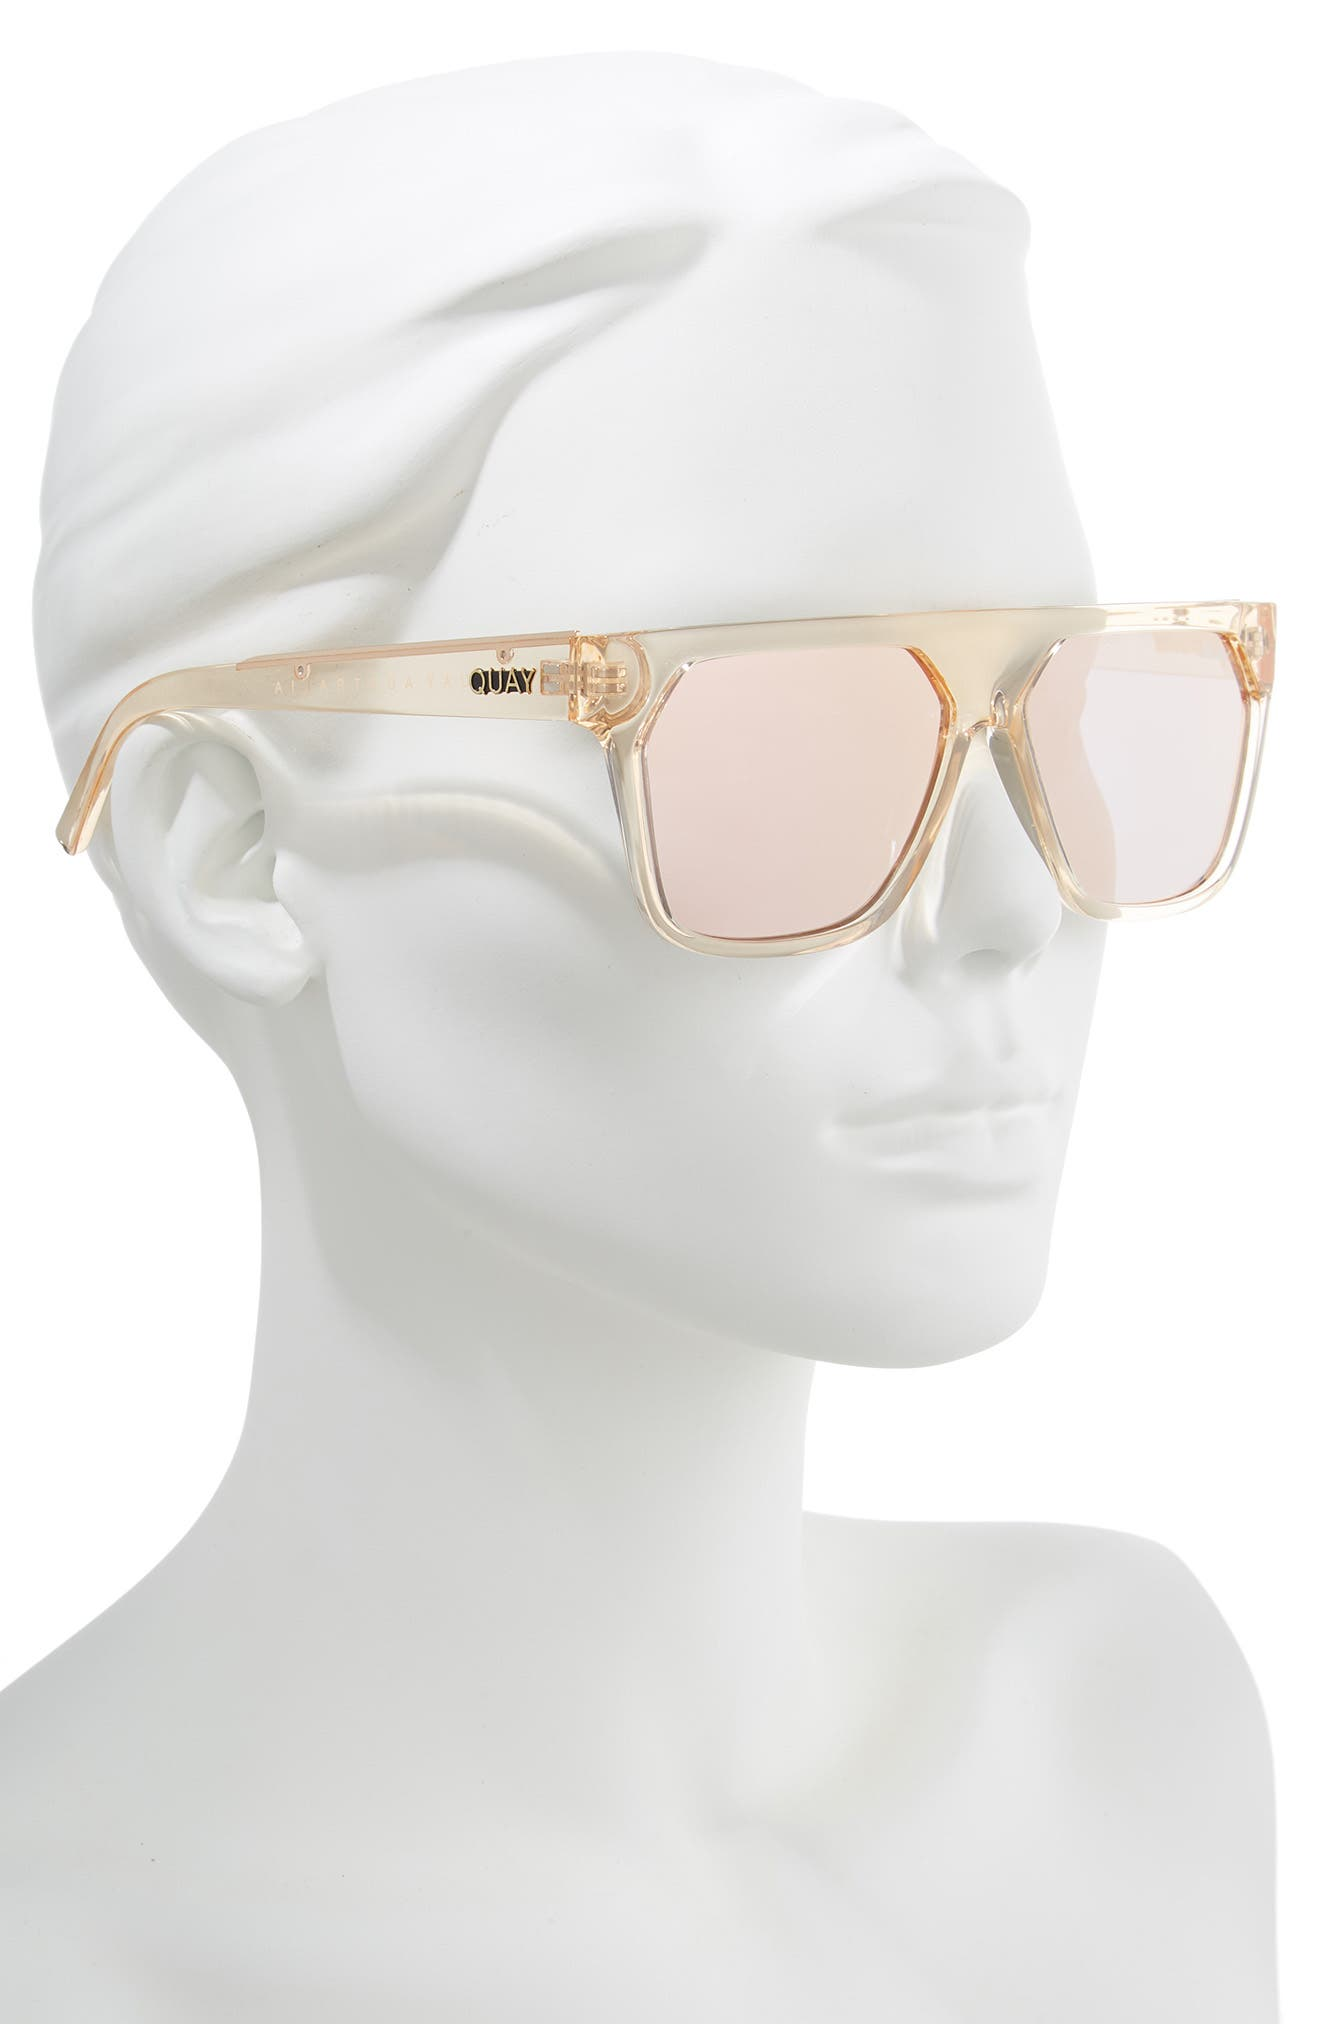 x Jaclyn Hill Very Busy 58mm Shield Sunglasses,                             Alternate thumbnail 3, color,                             CHAMPAGNE / ROSE